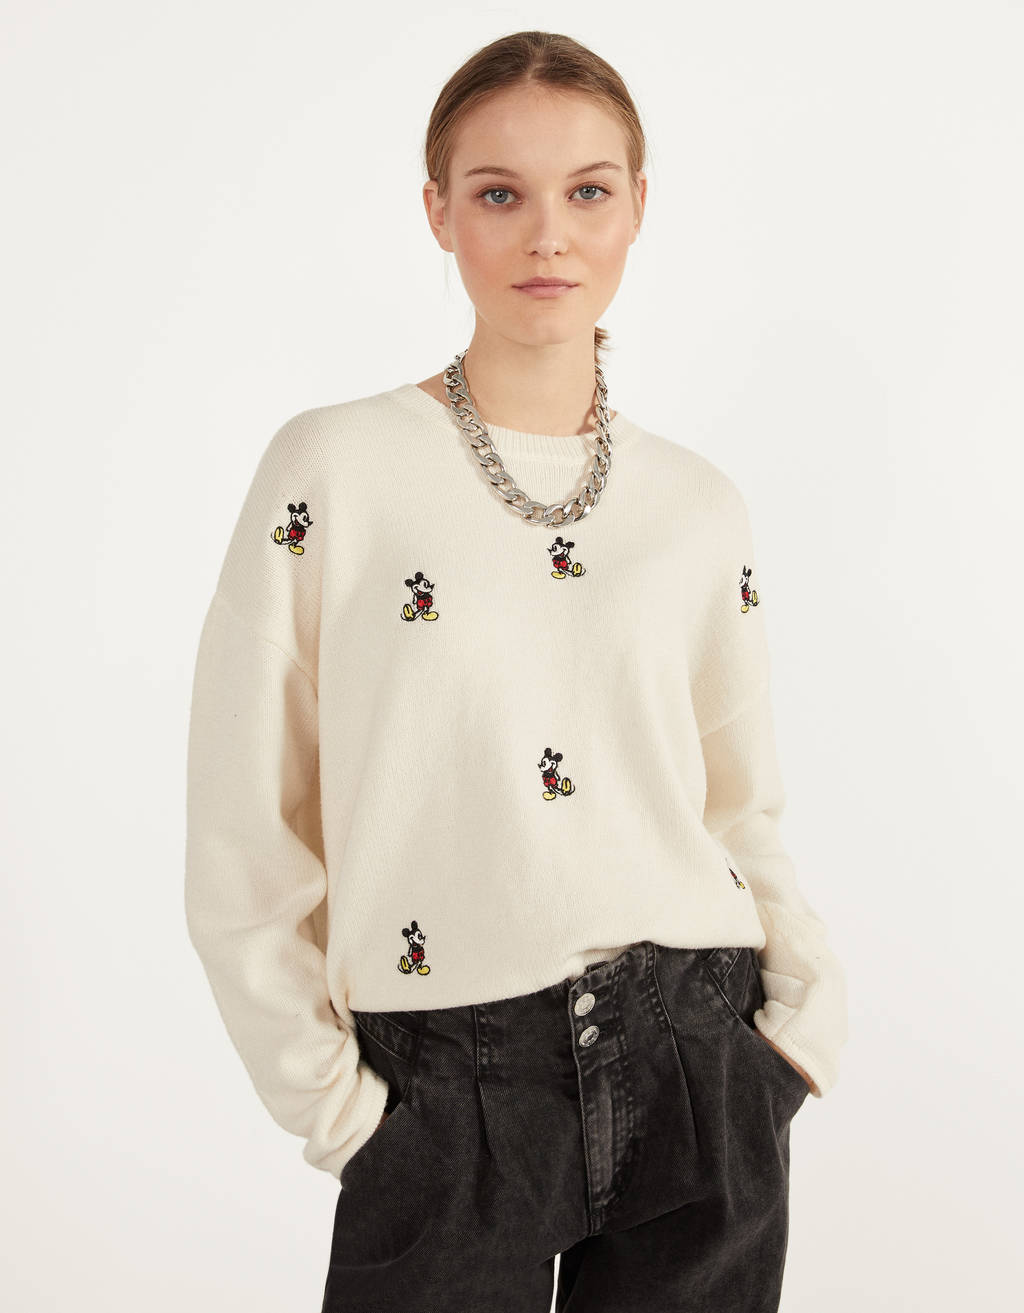 Embroidered Mickey Mouse sweater